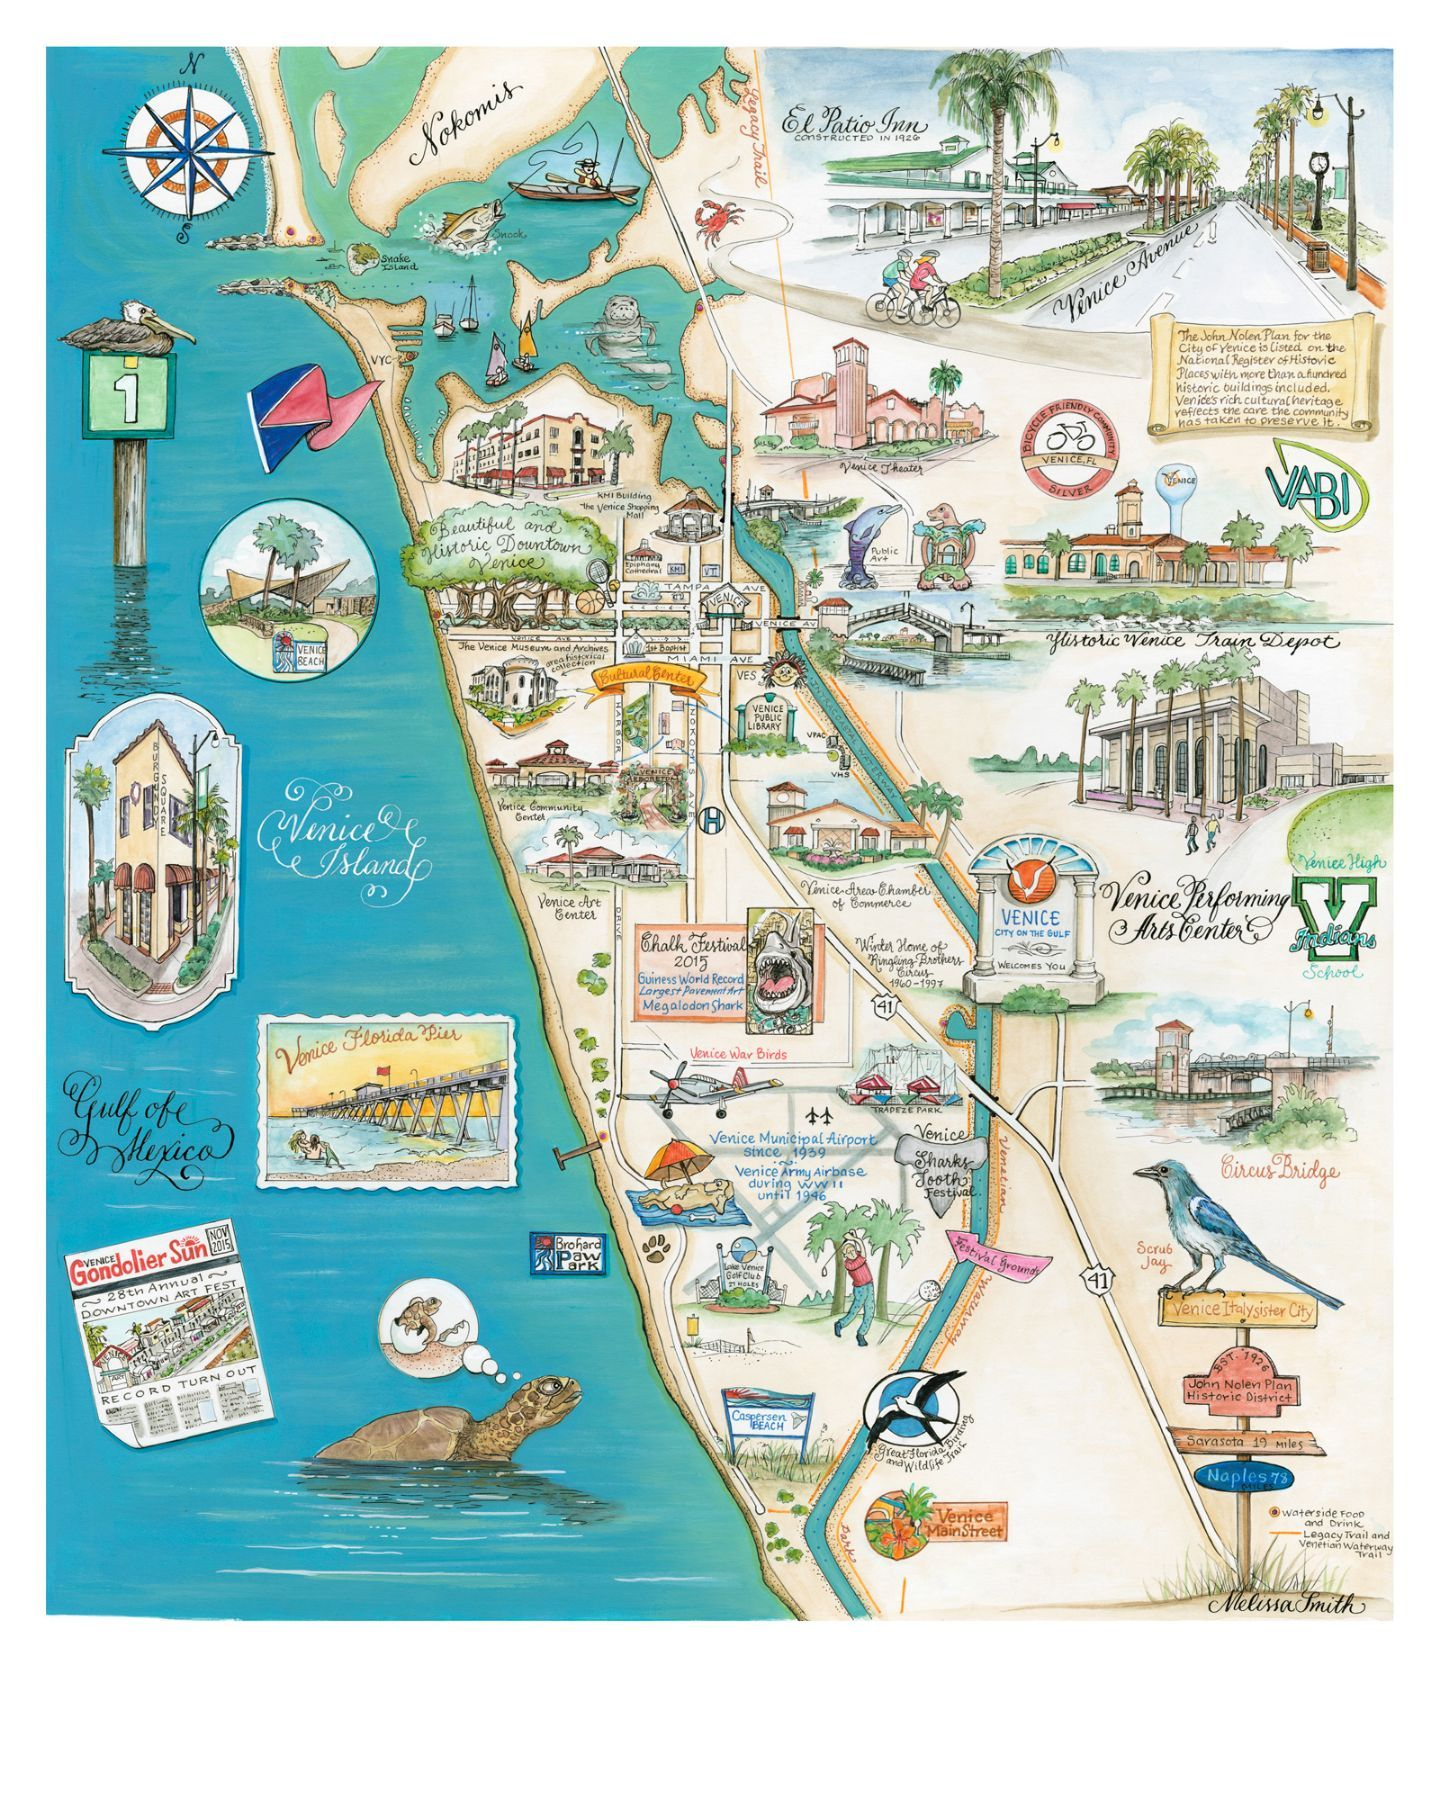 Venice, Florida Map - This Map Is One Of The Prettiest Maps I Have - Show Sarasota Florida On A Map